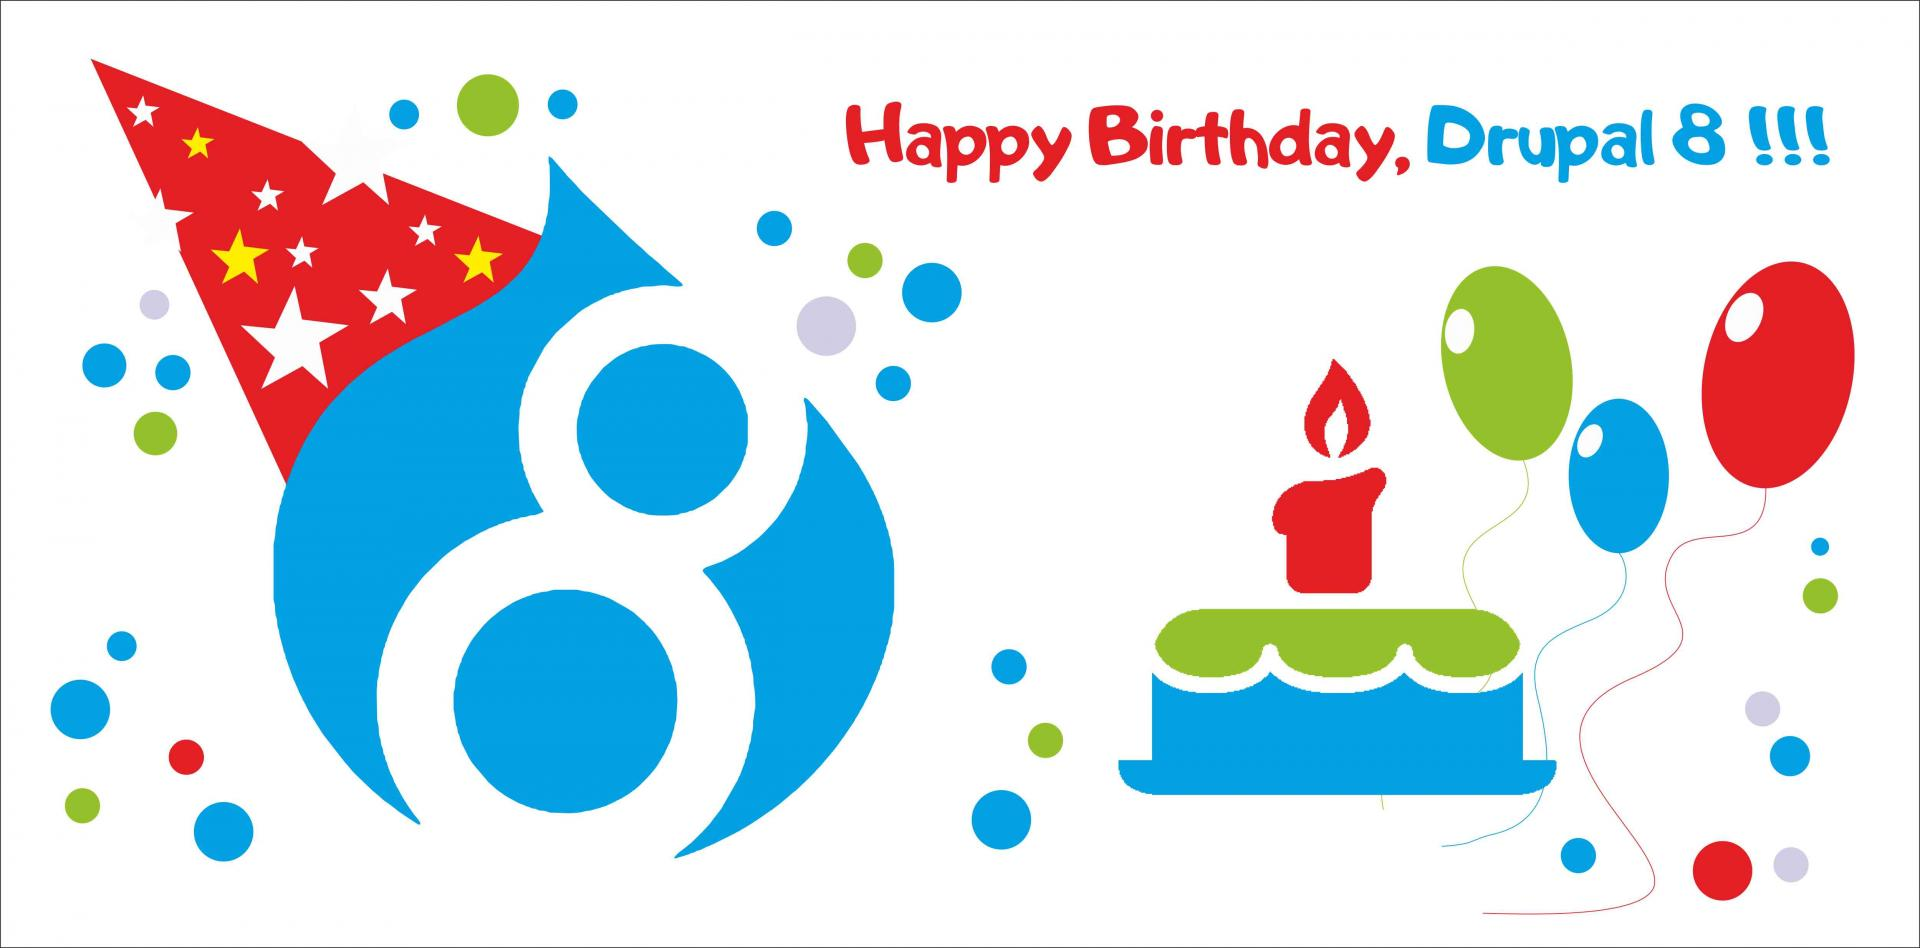 Drupal 8 released, happy birthday!